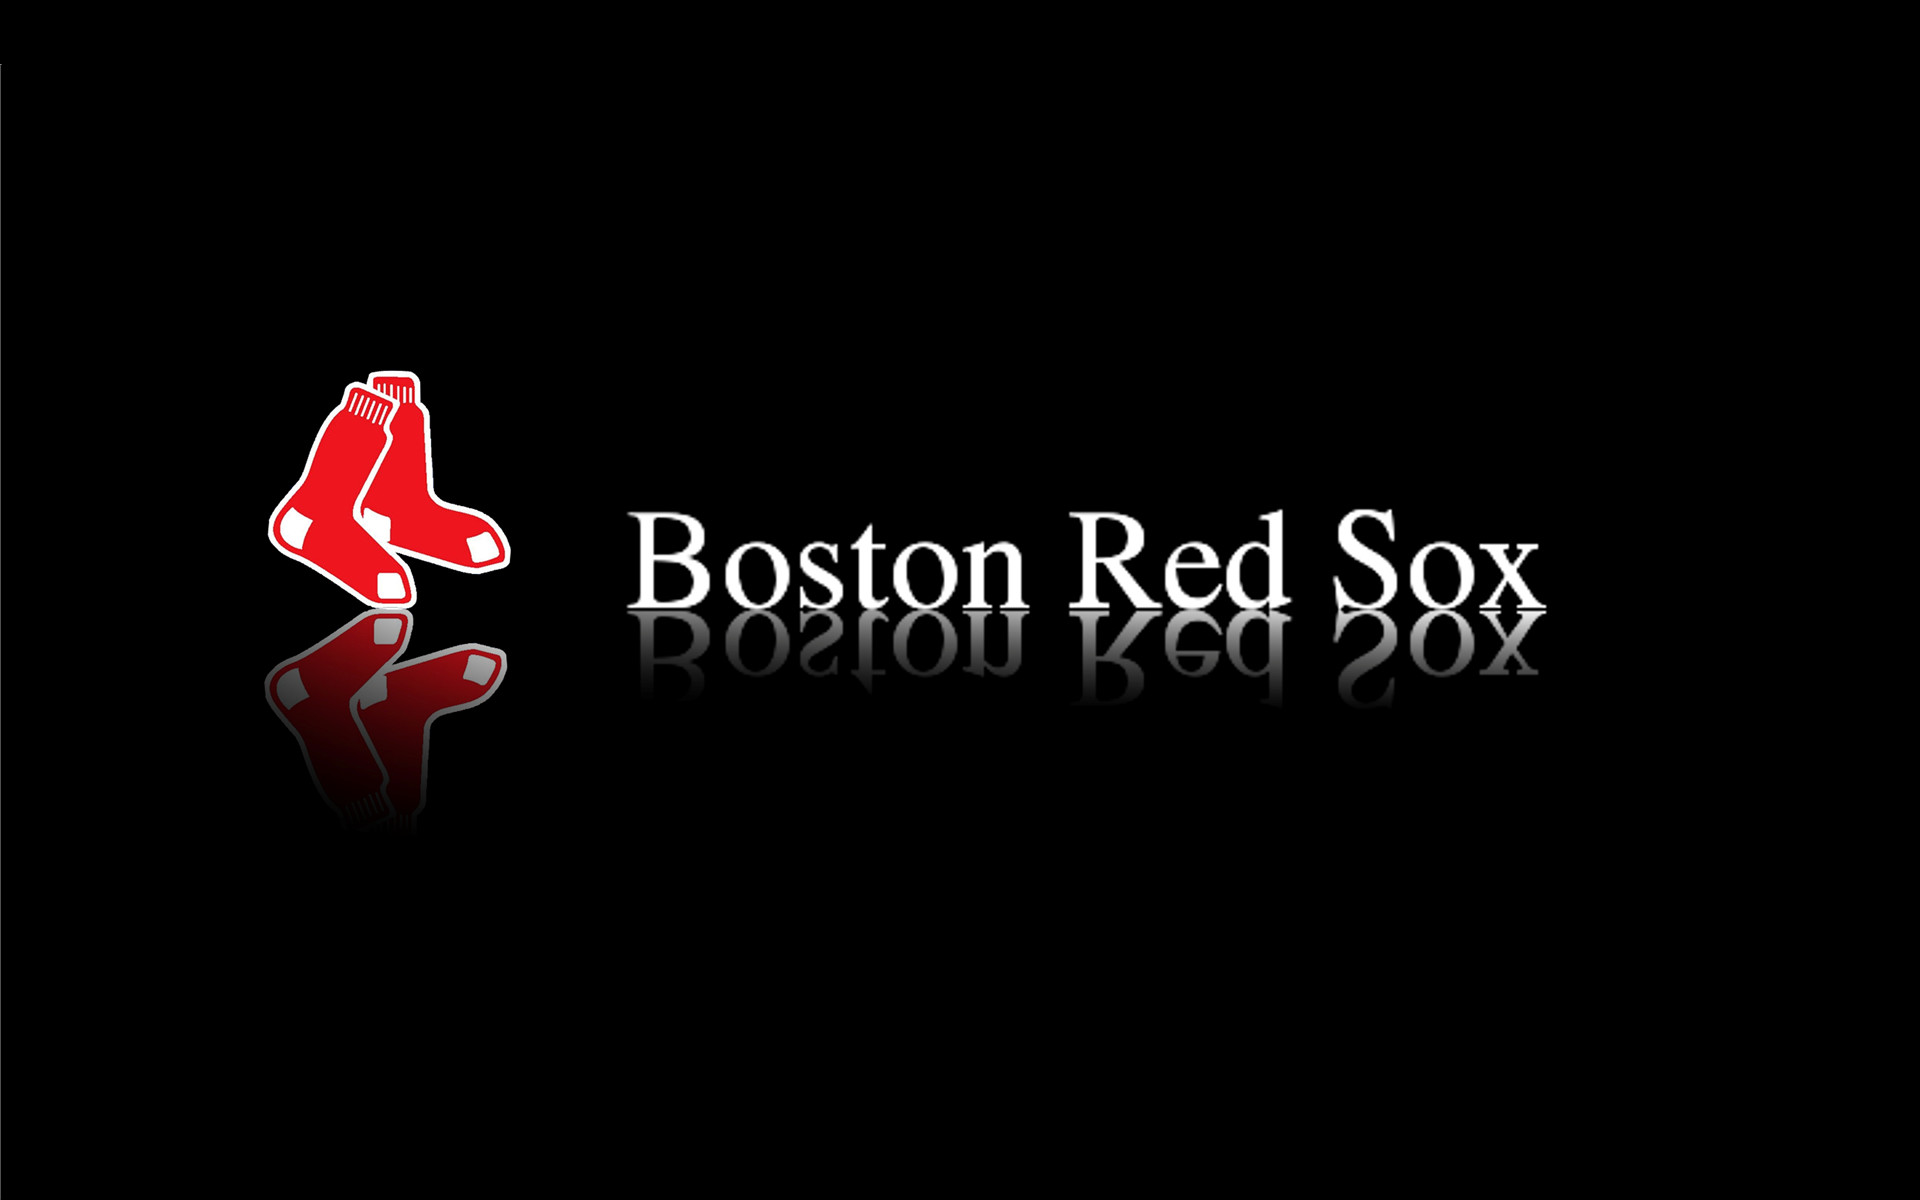 1920x1200 Boston Red Sox Logo Wallpapers - Wallpaper Cave